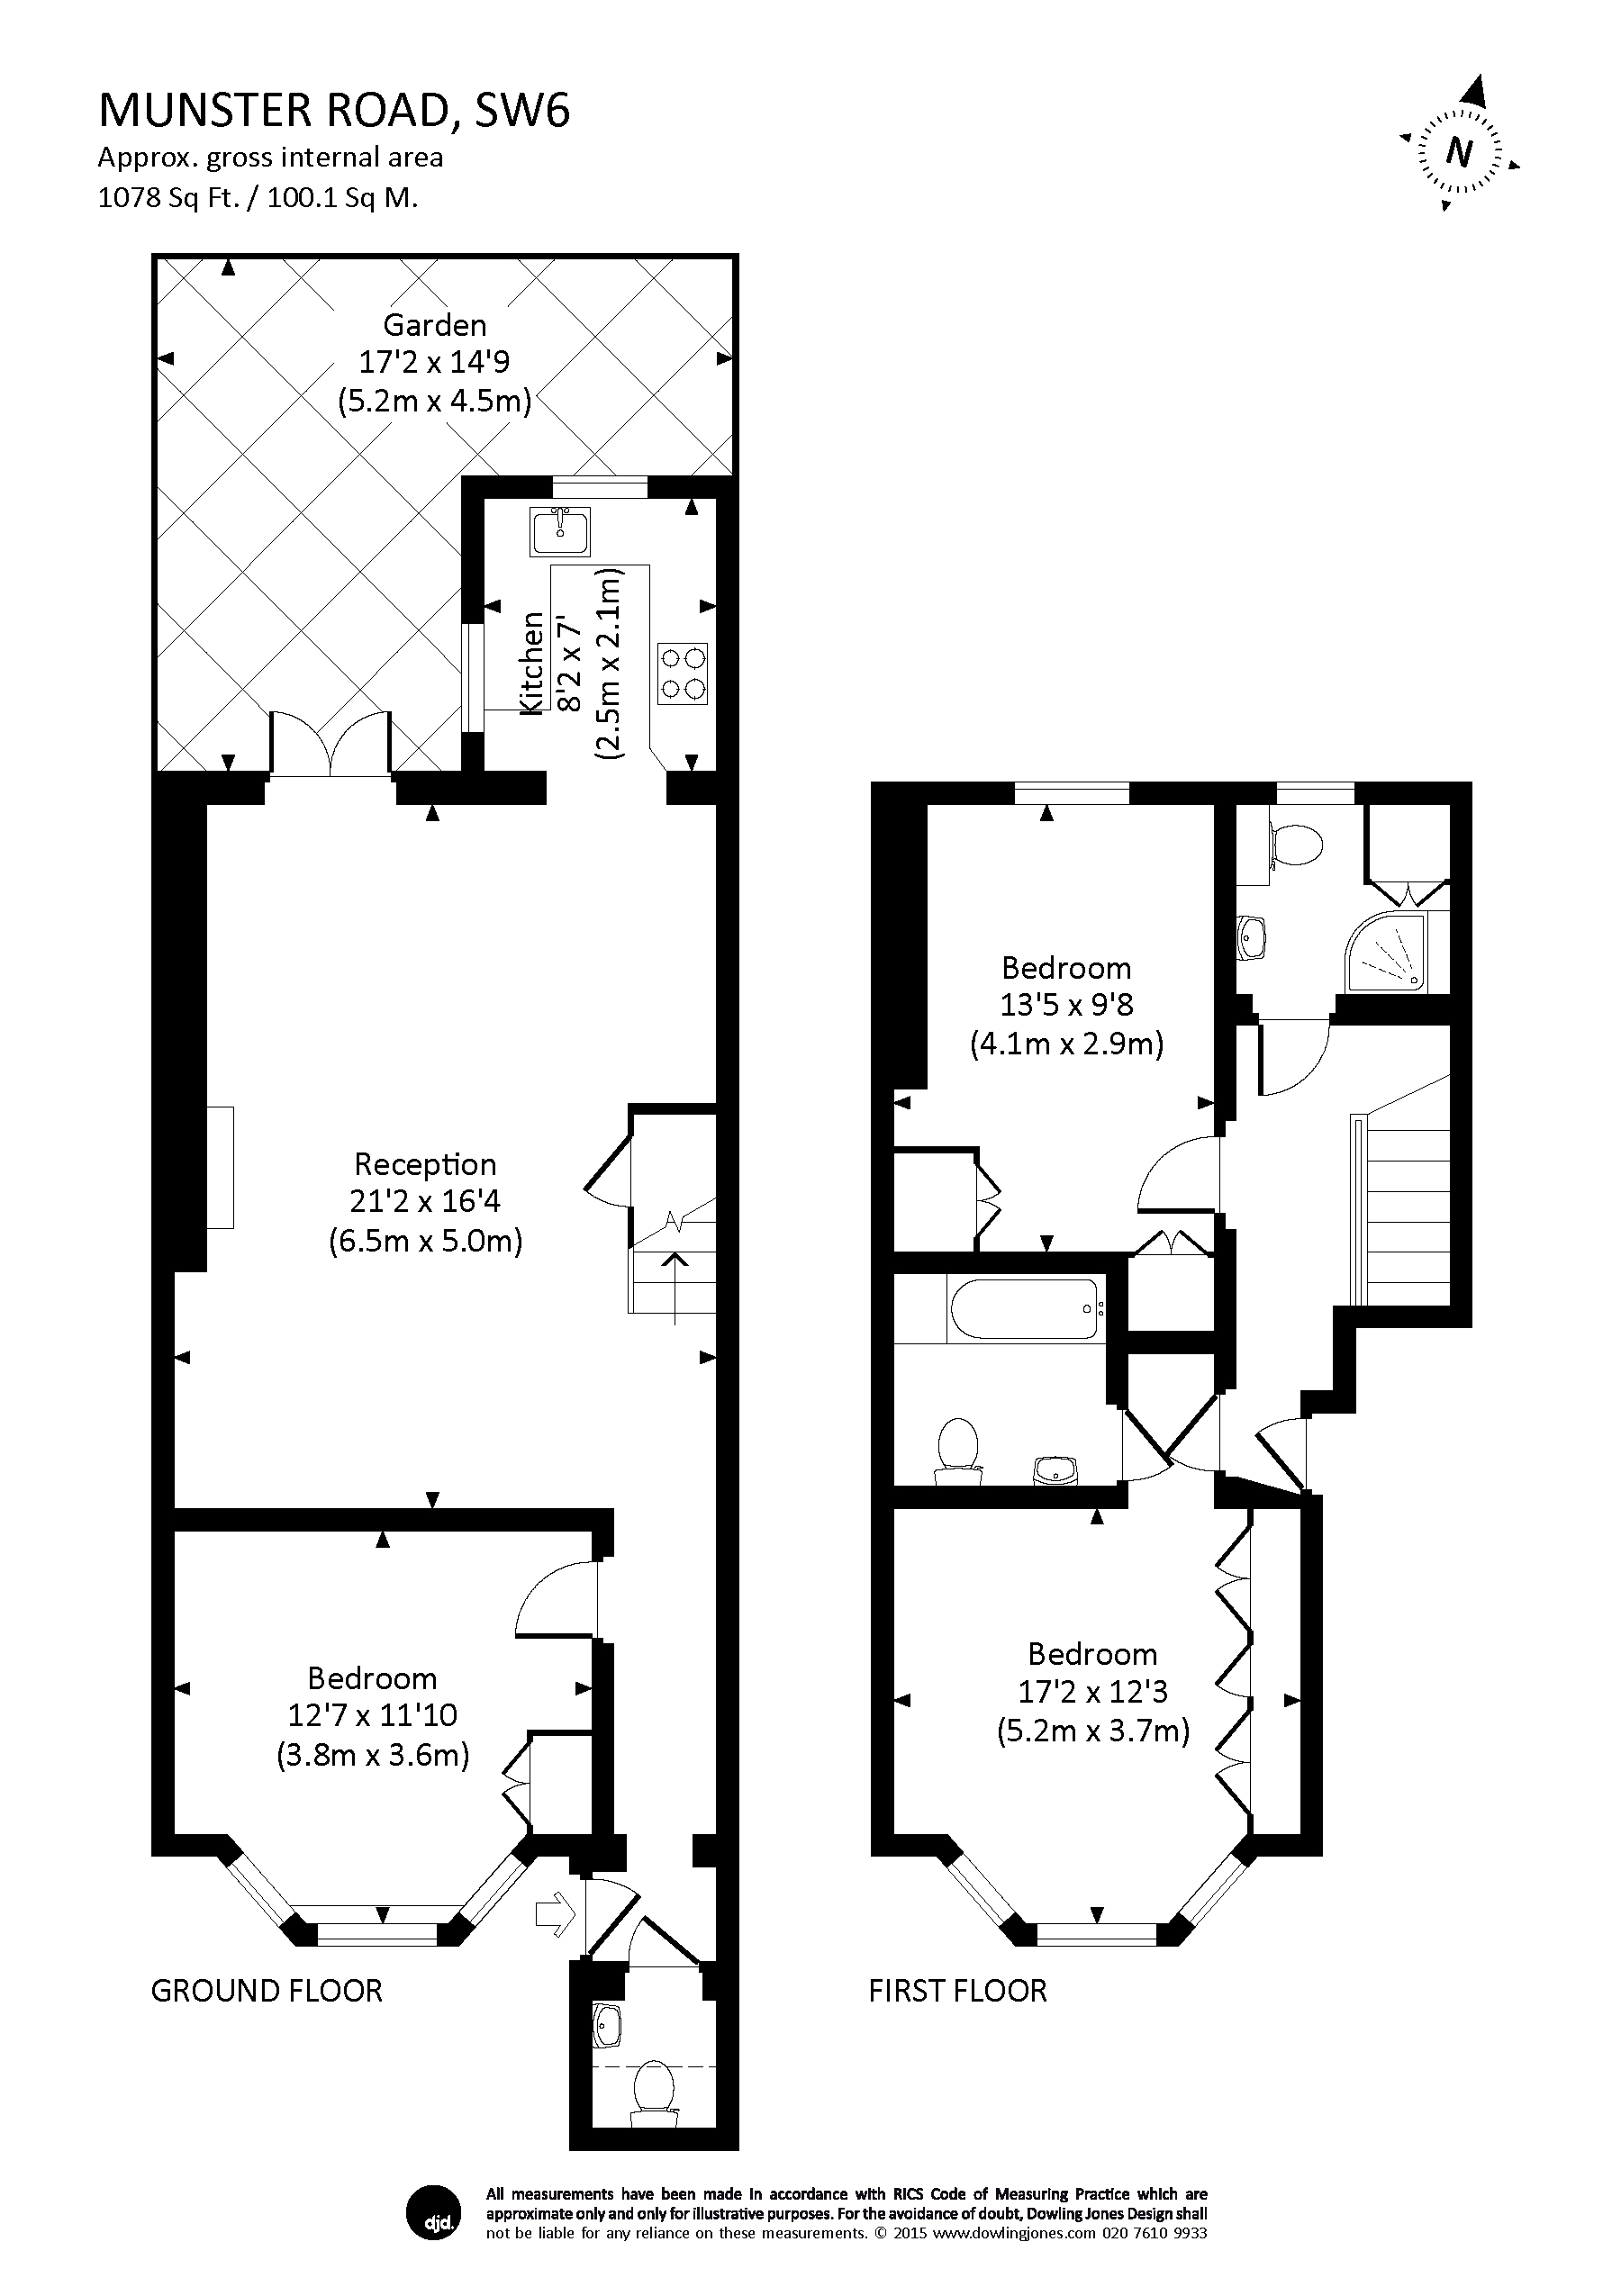 Munster road london fulham sw6 3 bedroom duplex to rent for Up down duplex floor plans